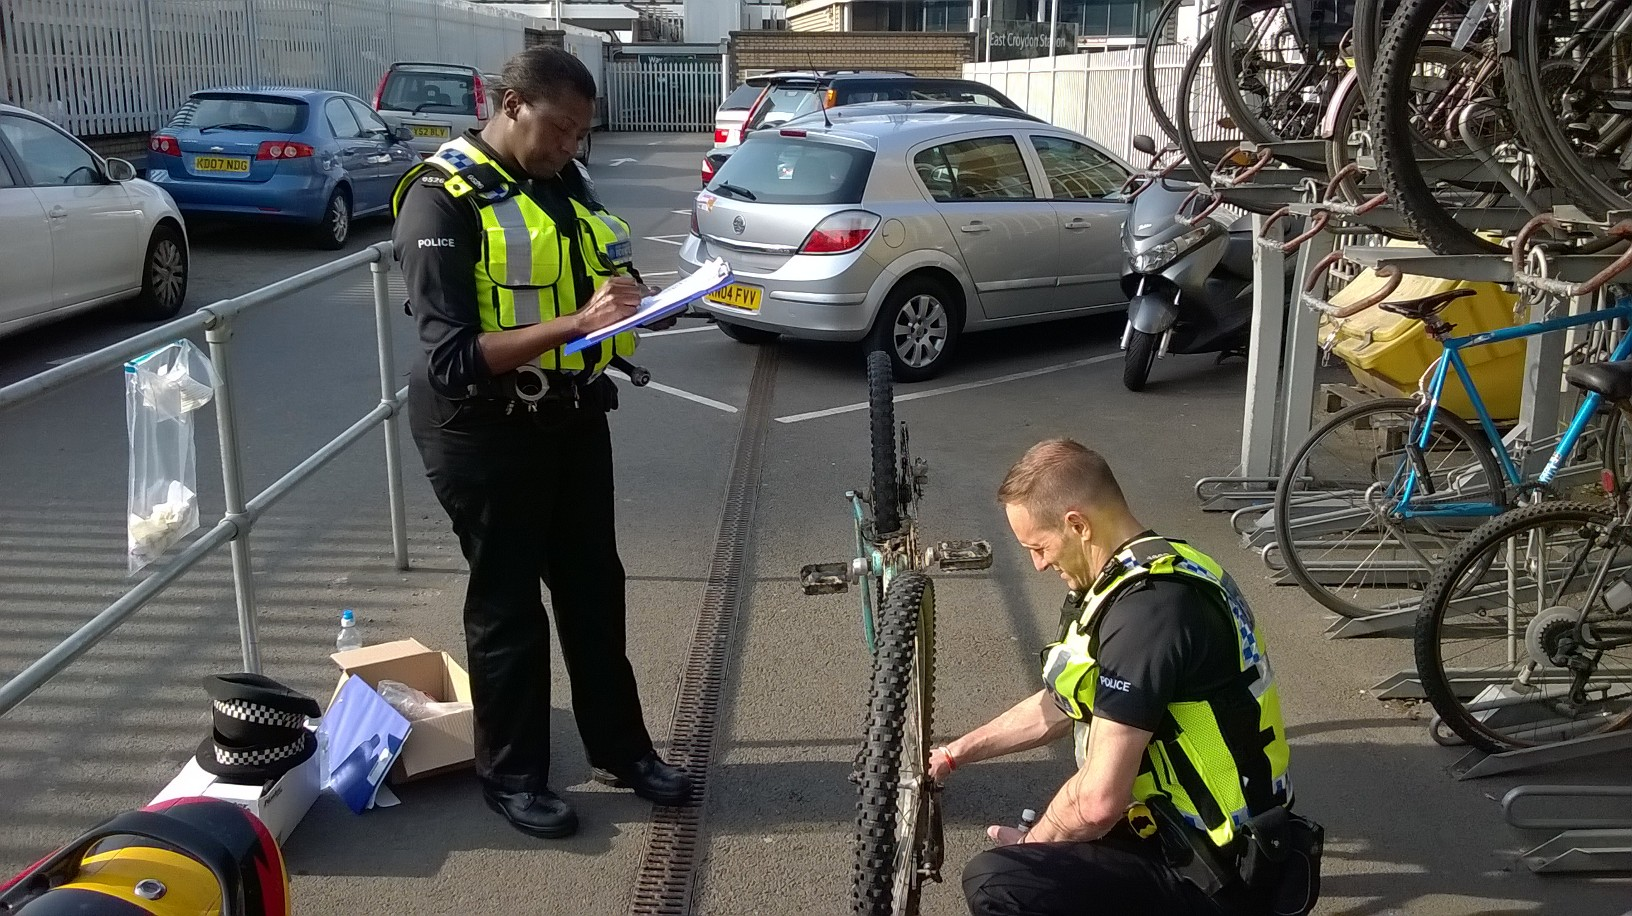 Police marking a bicycle in South London